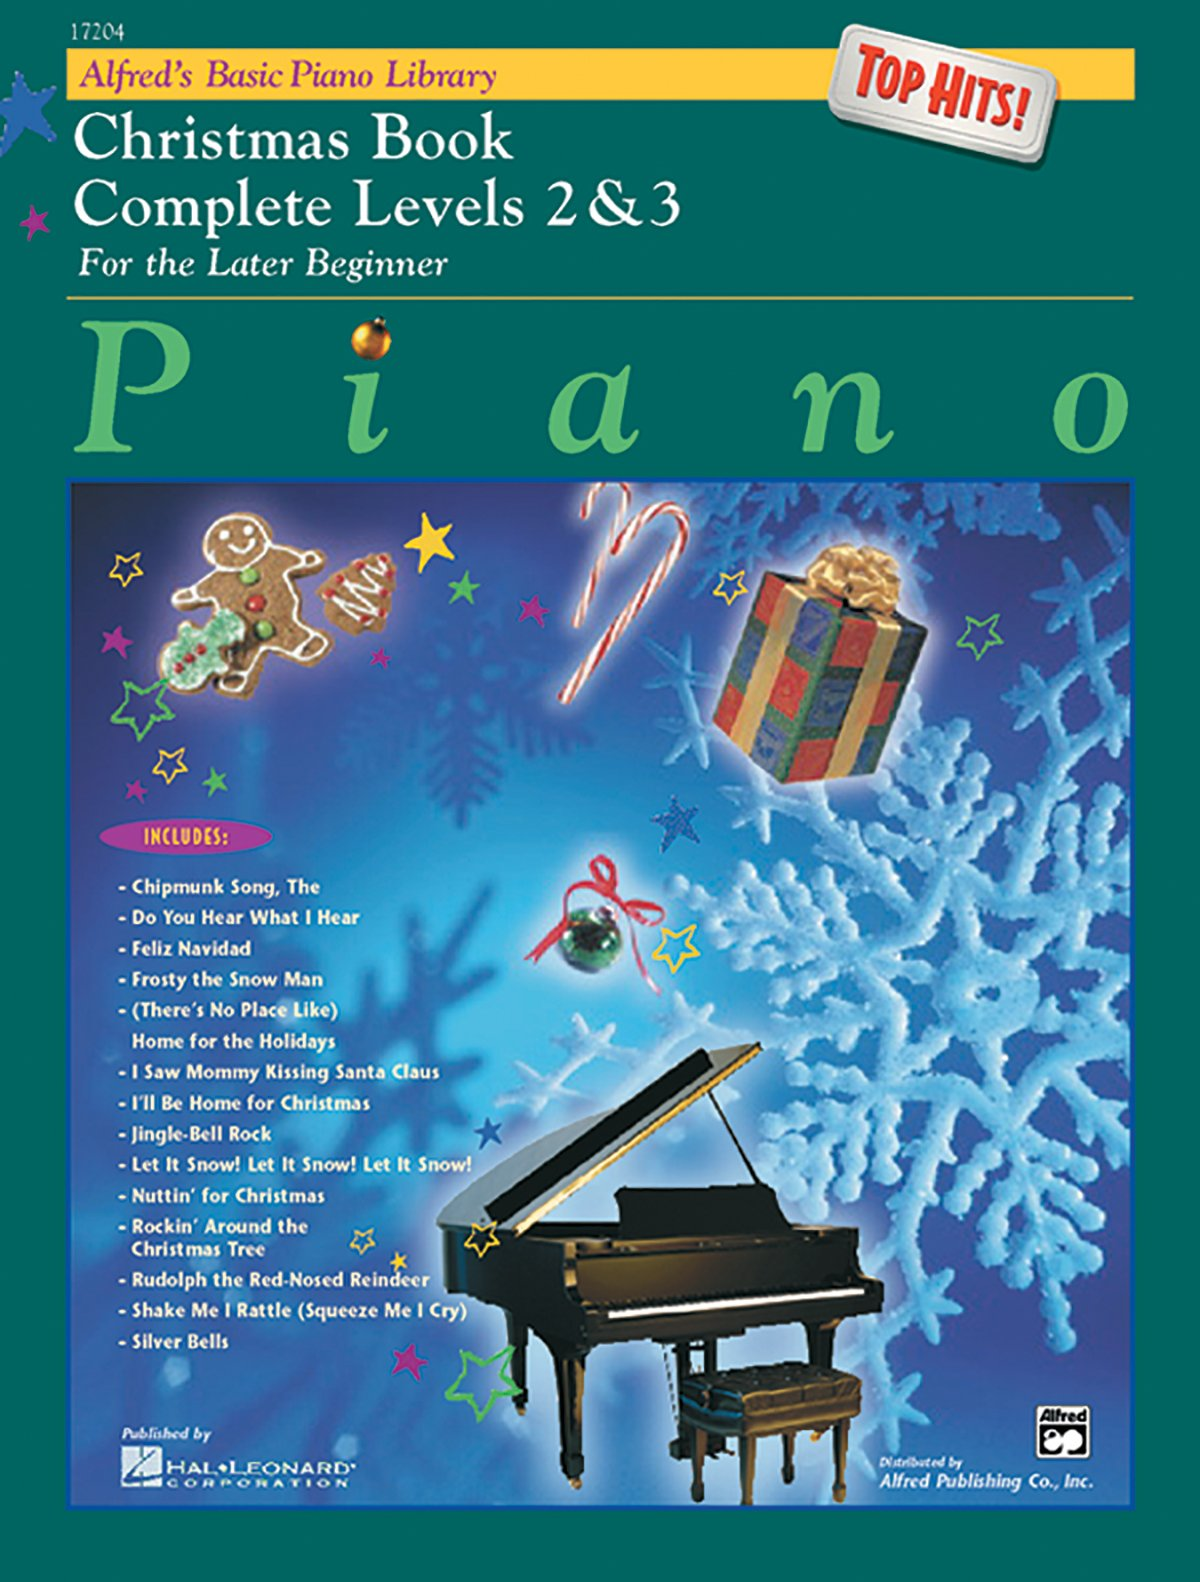 Download Alfred's Basic Piano Library Top Hits! Christmas Complete, Bk 2 & 3: For the Later Beginner ebook